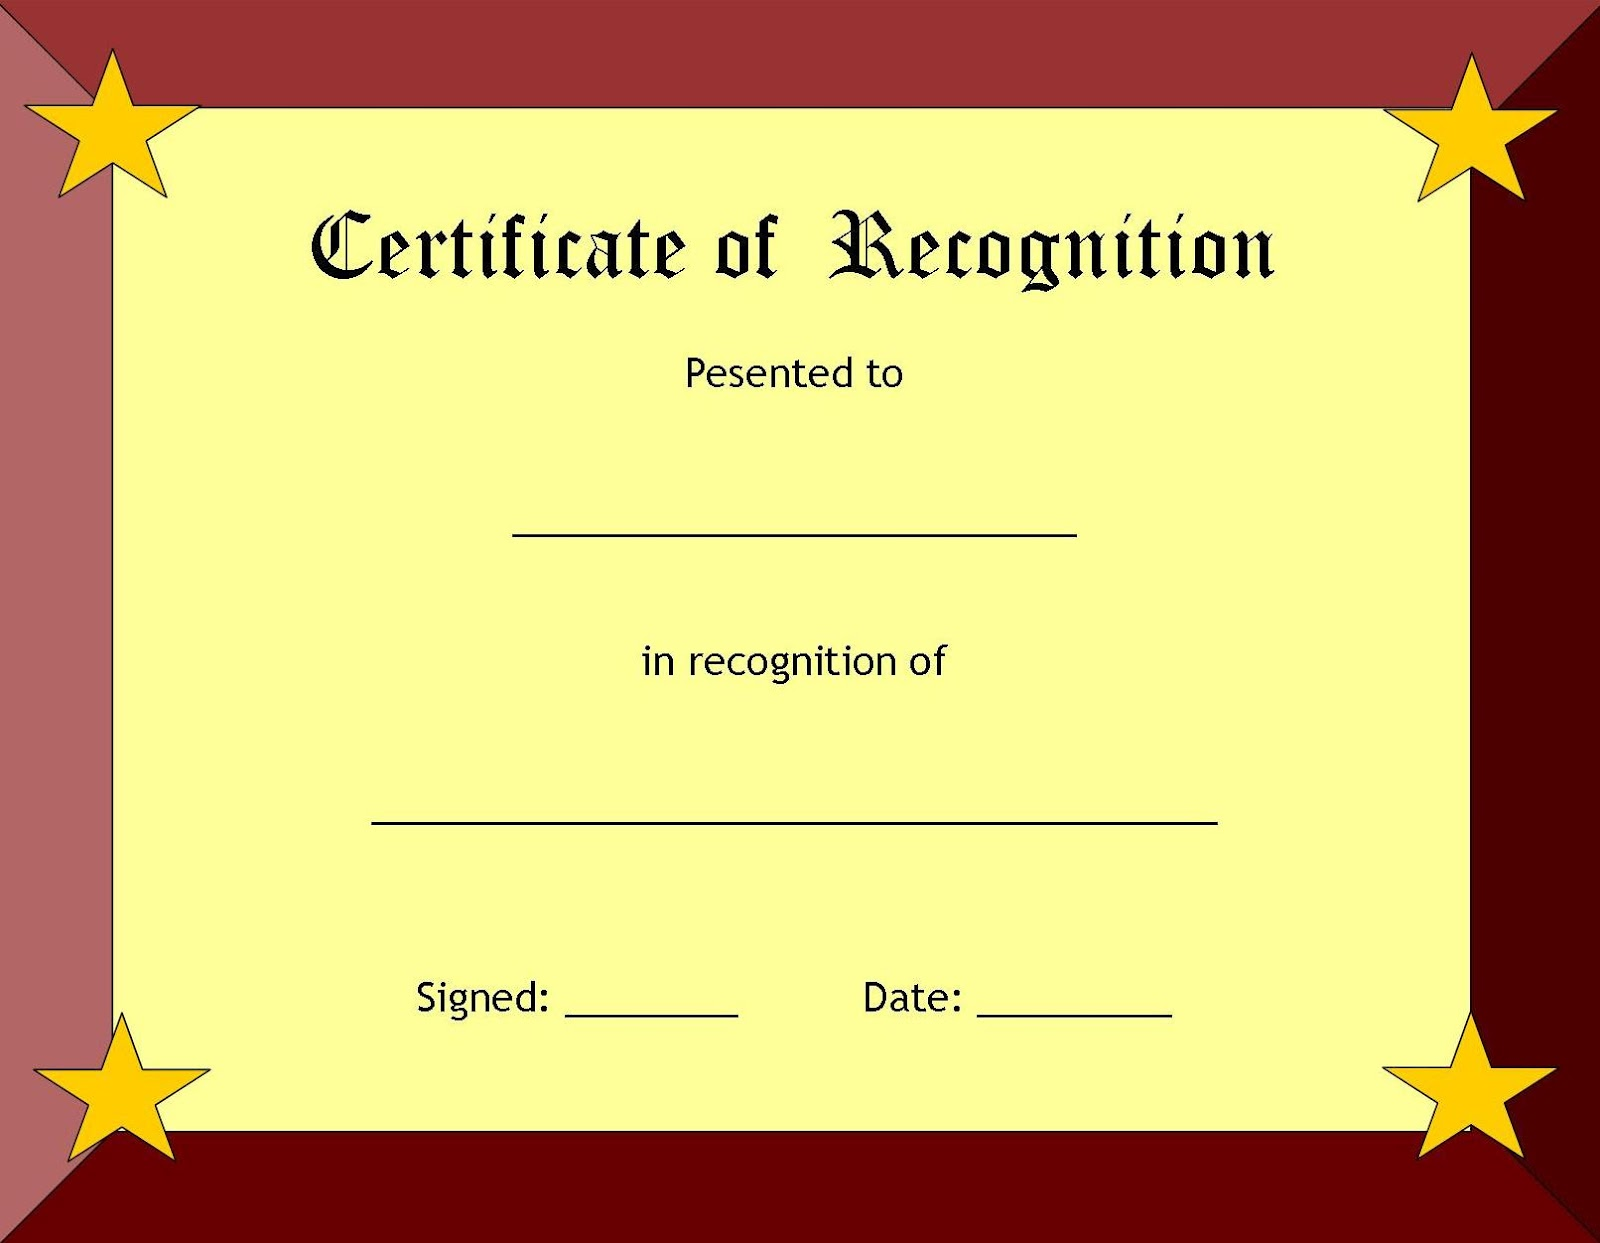 Free Certificate Template A Collection Of Free Certificate Borders And Templates